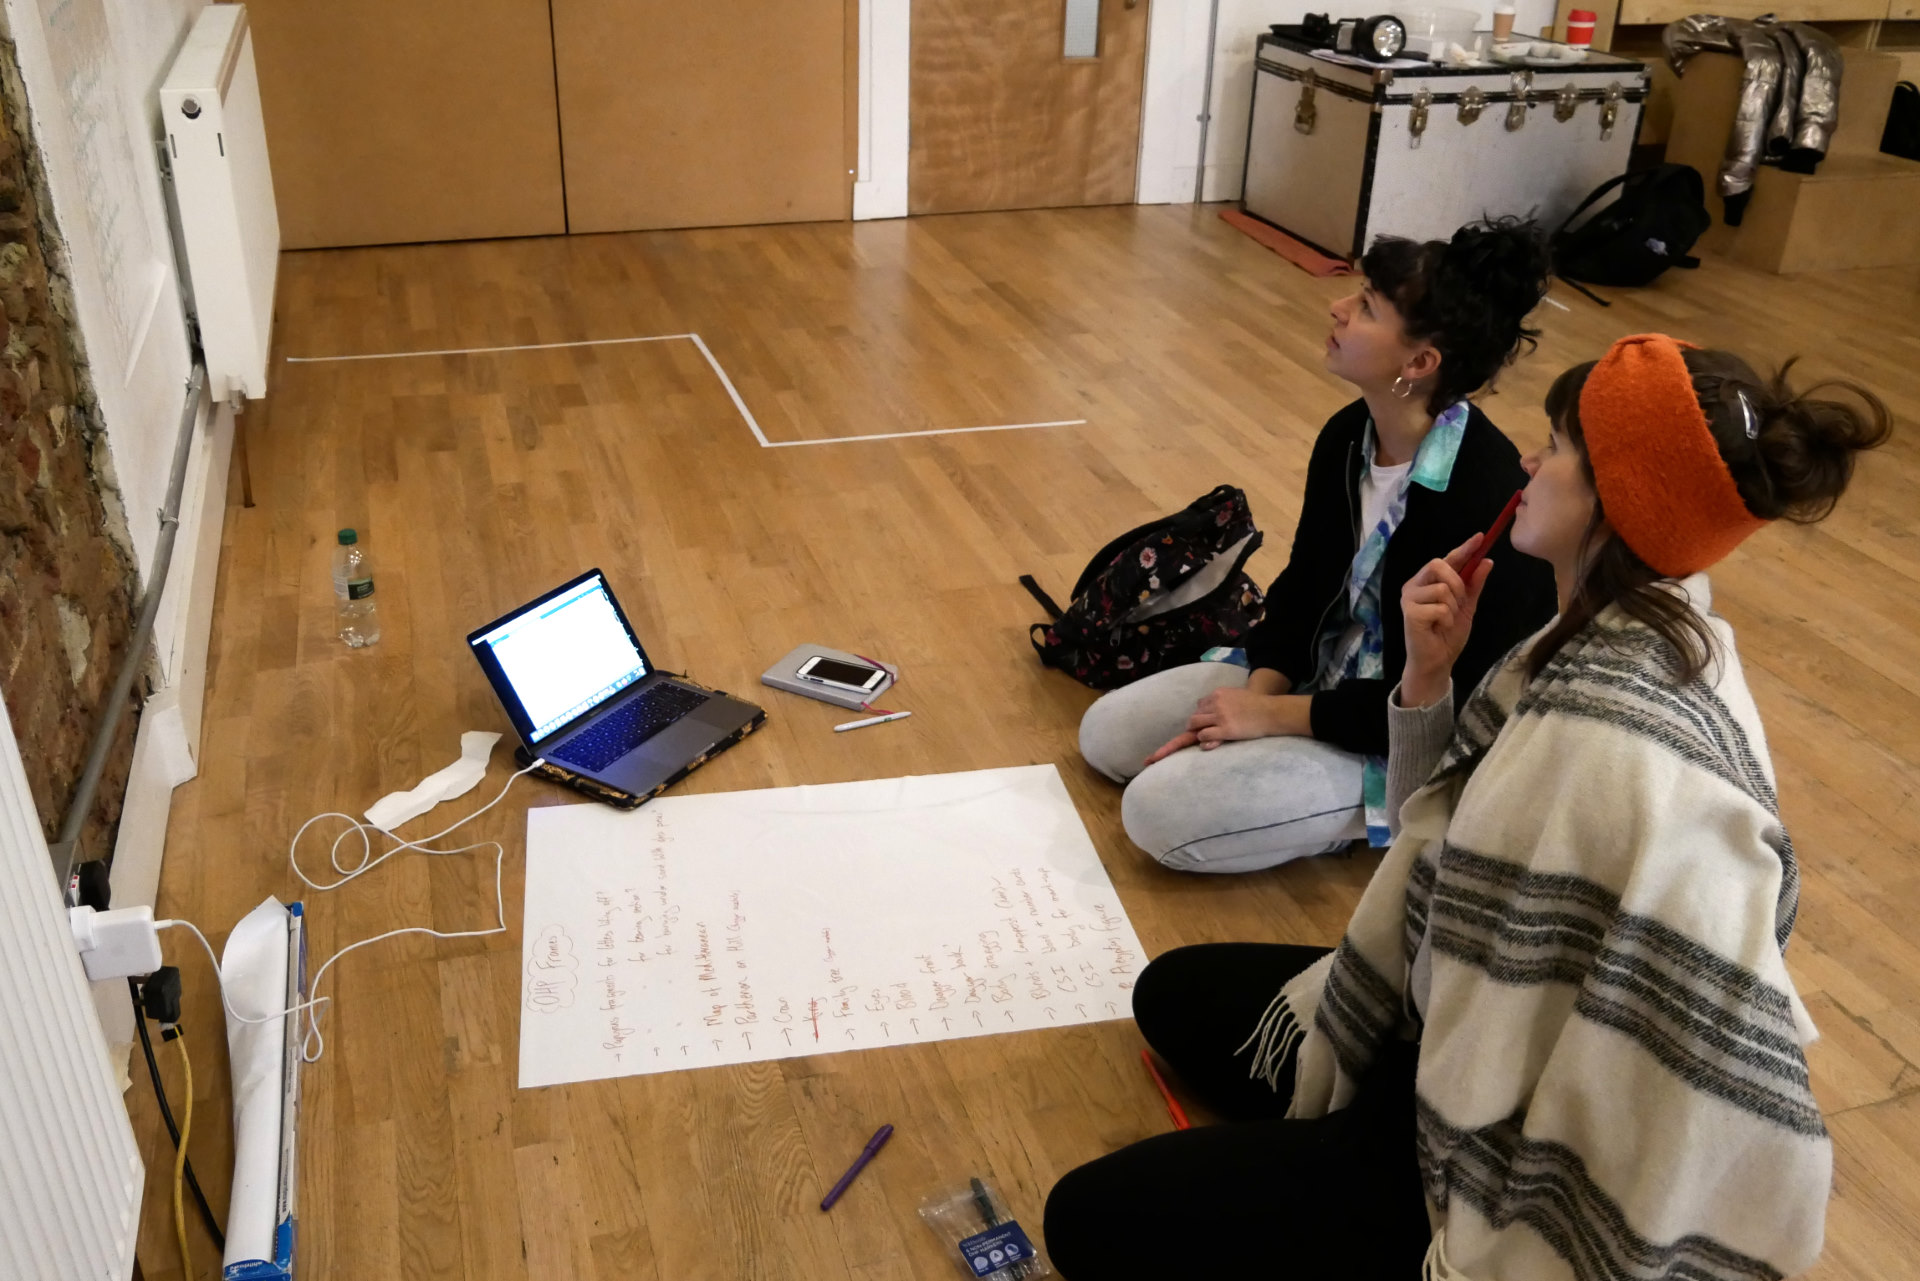 Jess and Lori, our puppetry director and associate, kneel on the floor of a rehearsal studio, staring thoughtfully at a list on the wall, surrounded by a laptop, pens and large sheets of paper.